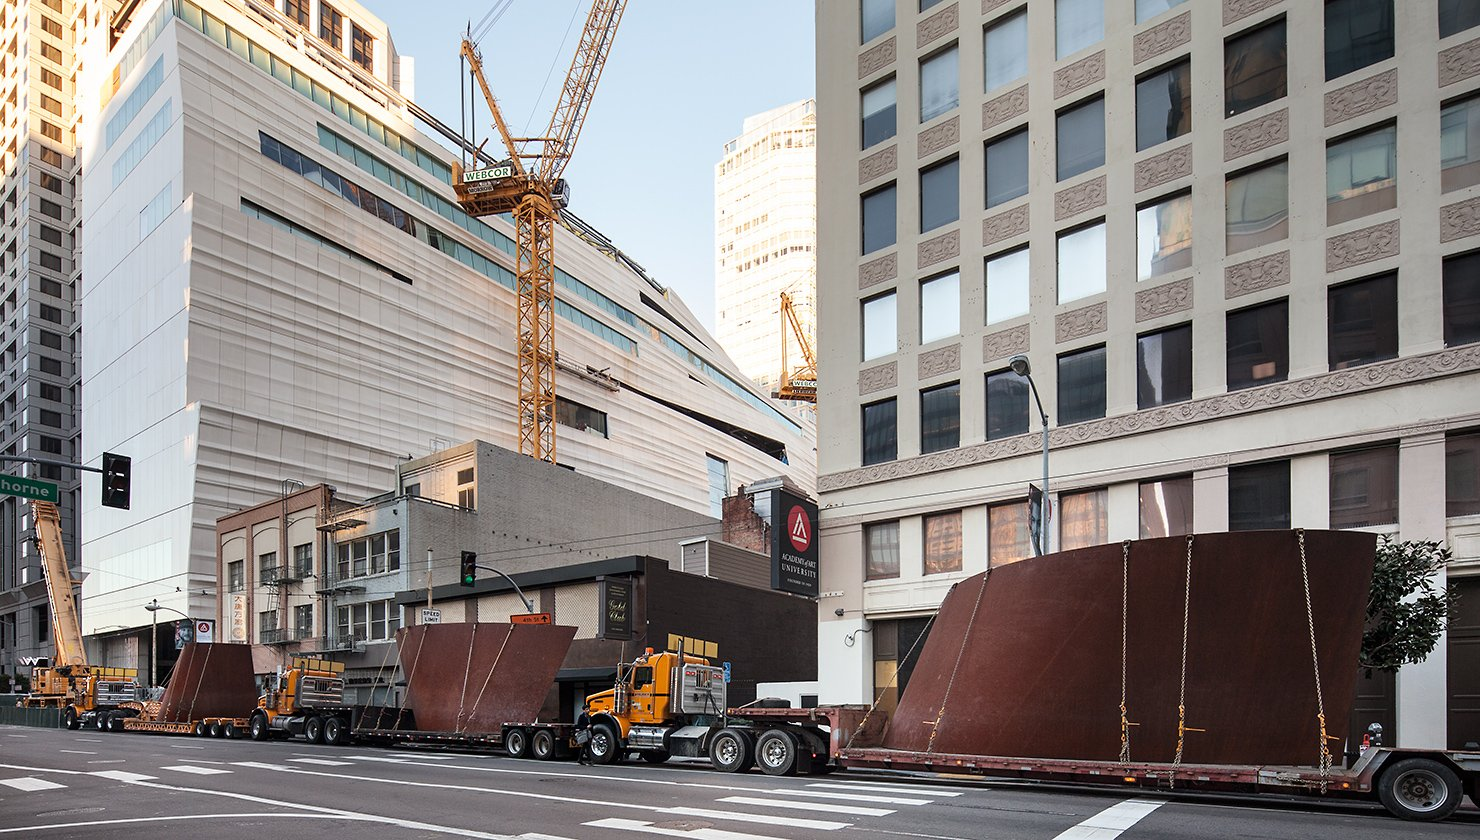 Large bronze sculptural coils are transported along a city street